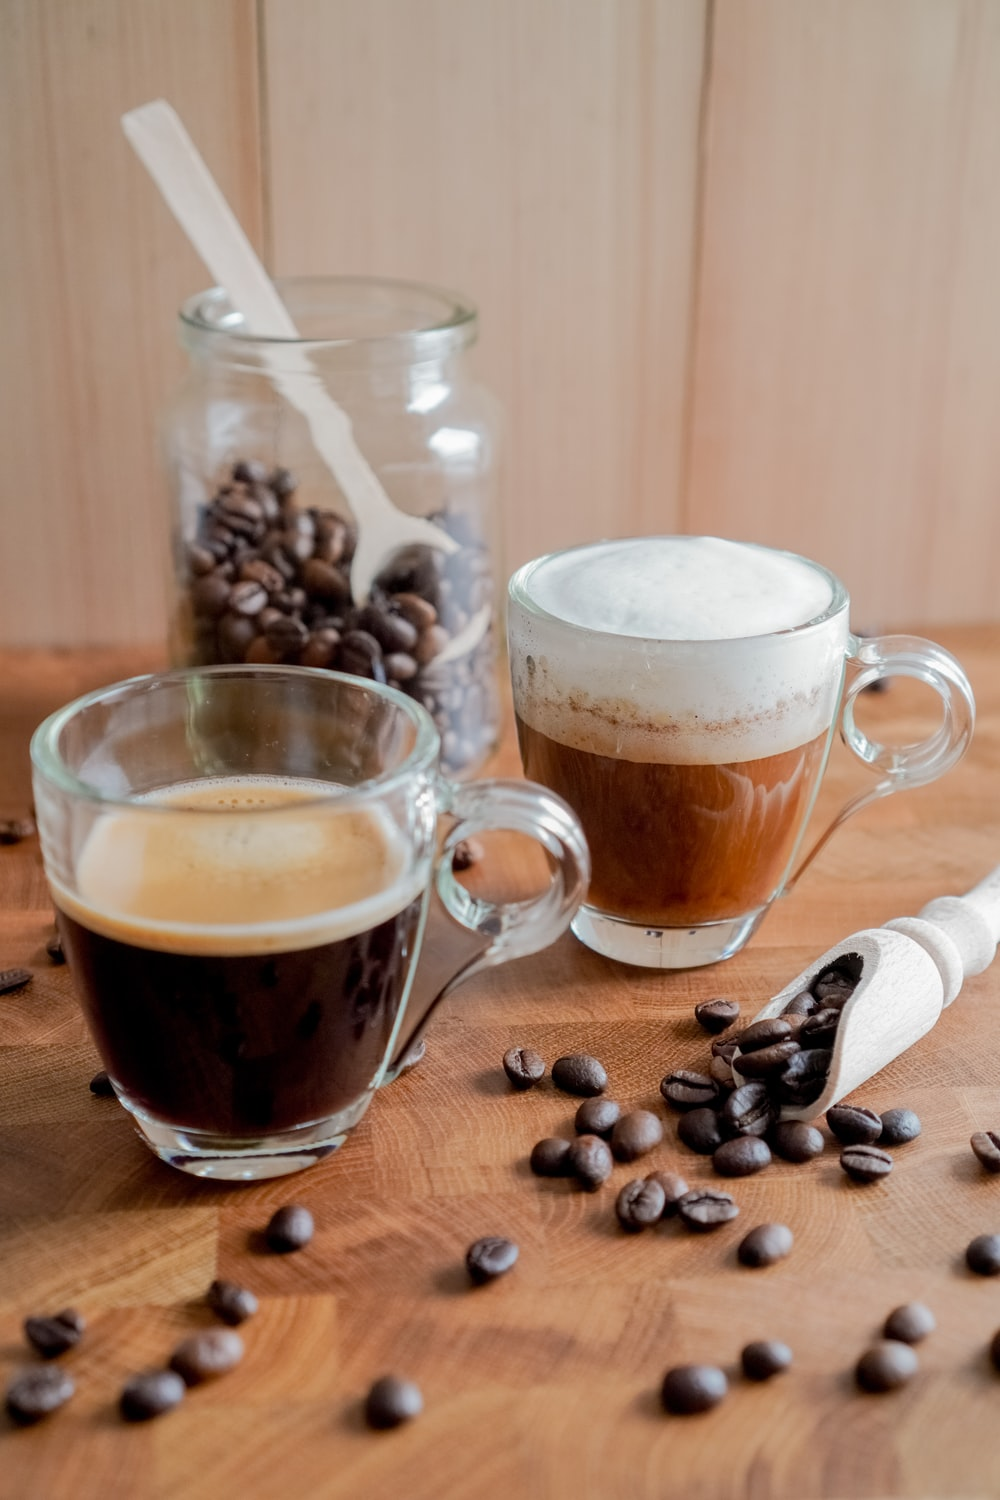 clear glass mug with coffee beans on brown wooden table